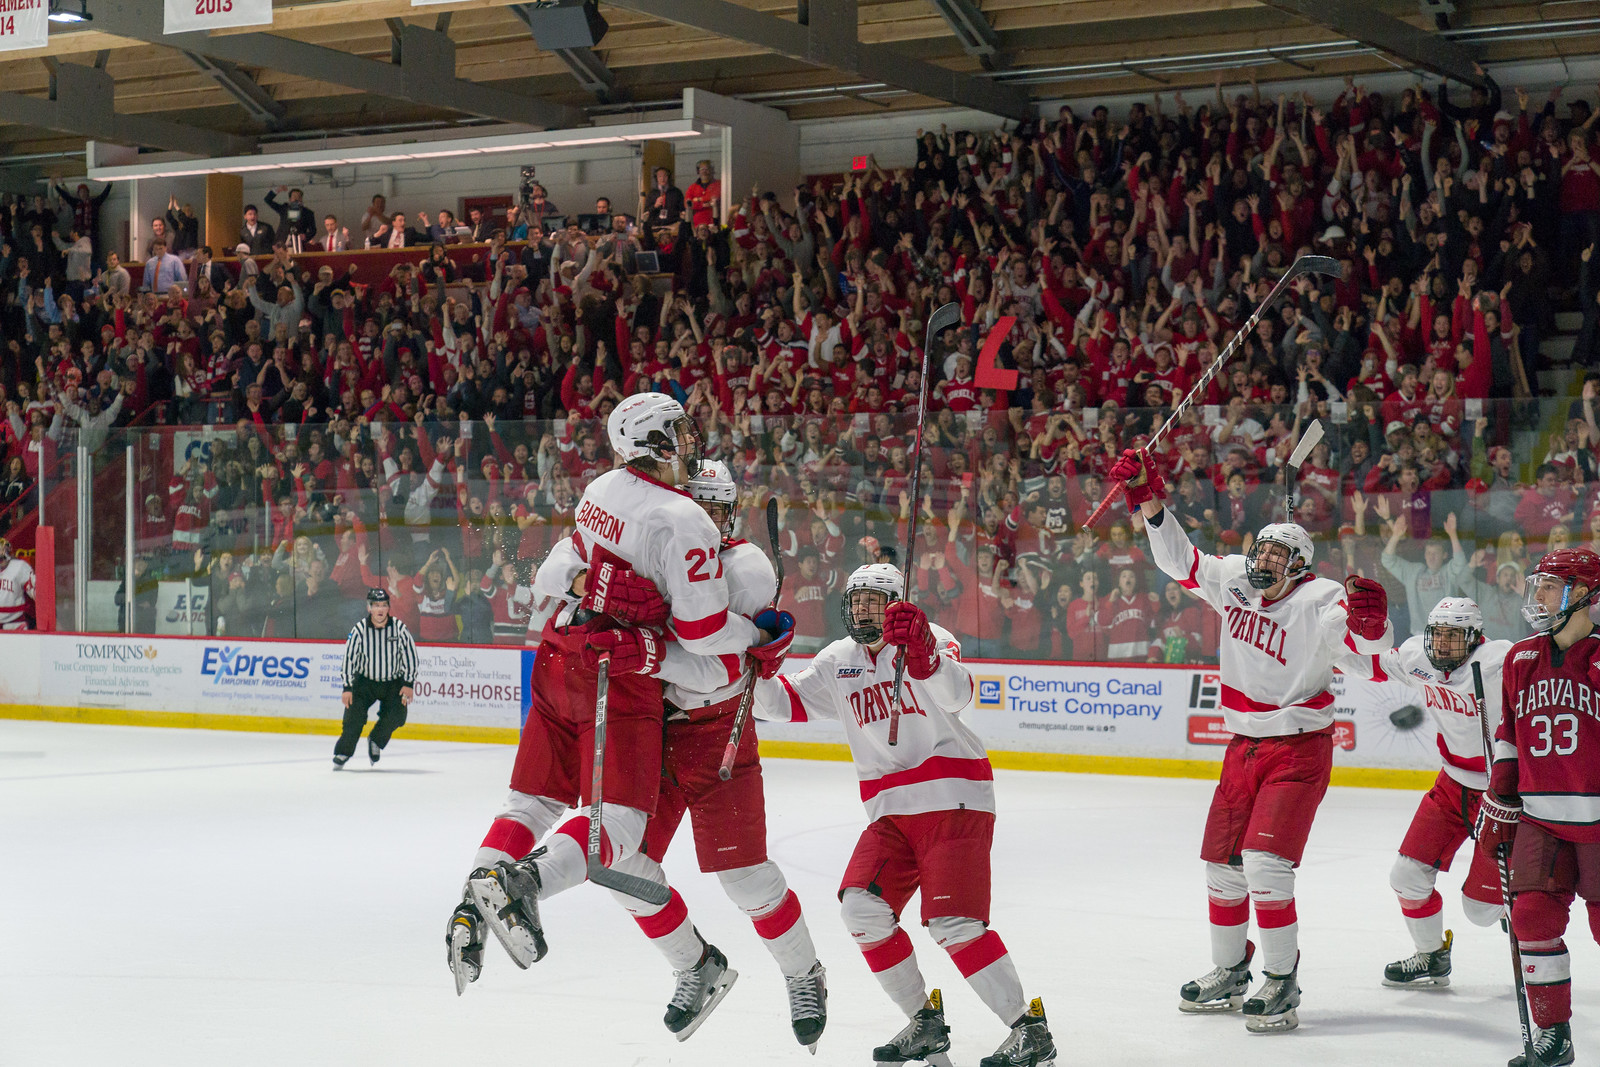 Cornell celebrates after scoring the game-winning goal with 1.4 seconds remaining in Saturday's contest. The loss, which evokes mainly frustration from the Crimson, puts Harvard under .500 for the first time since late-2013.